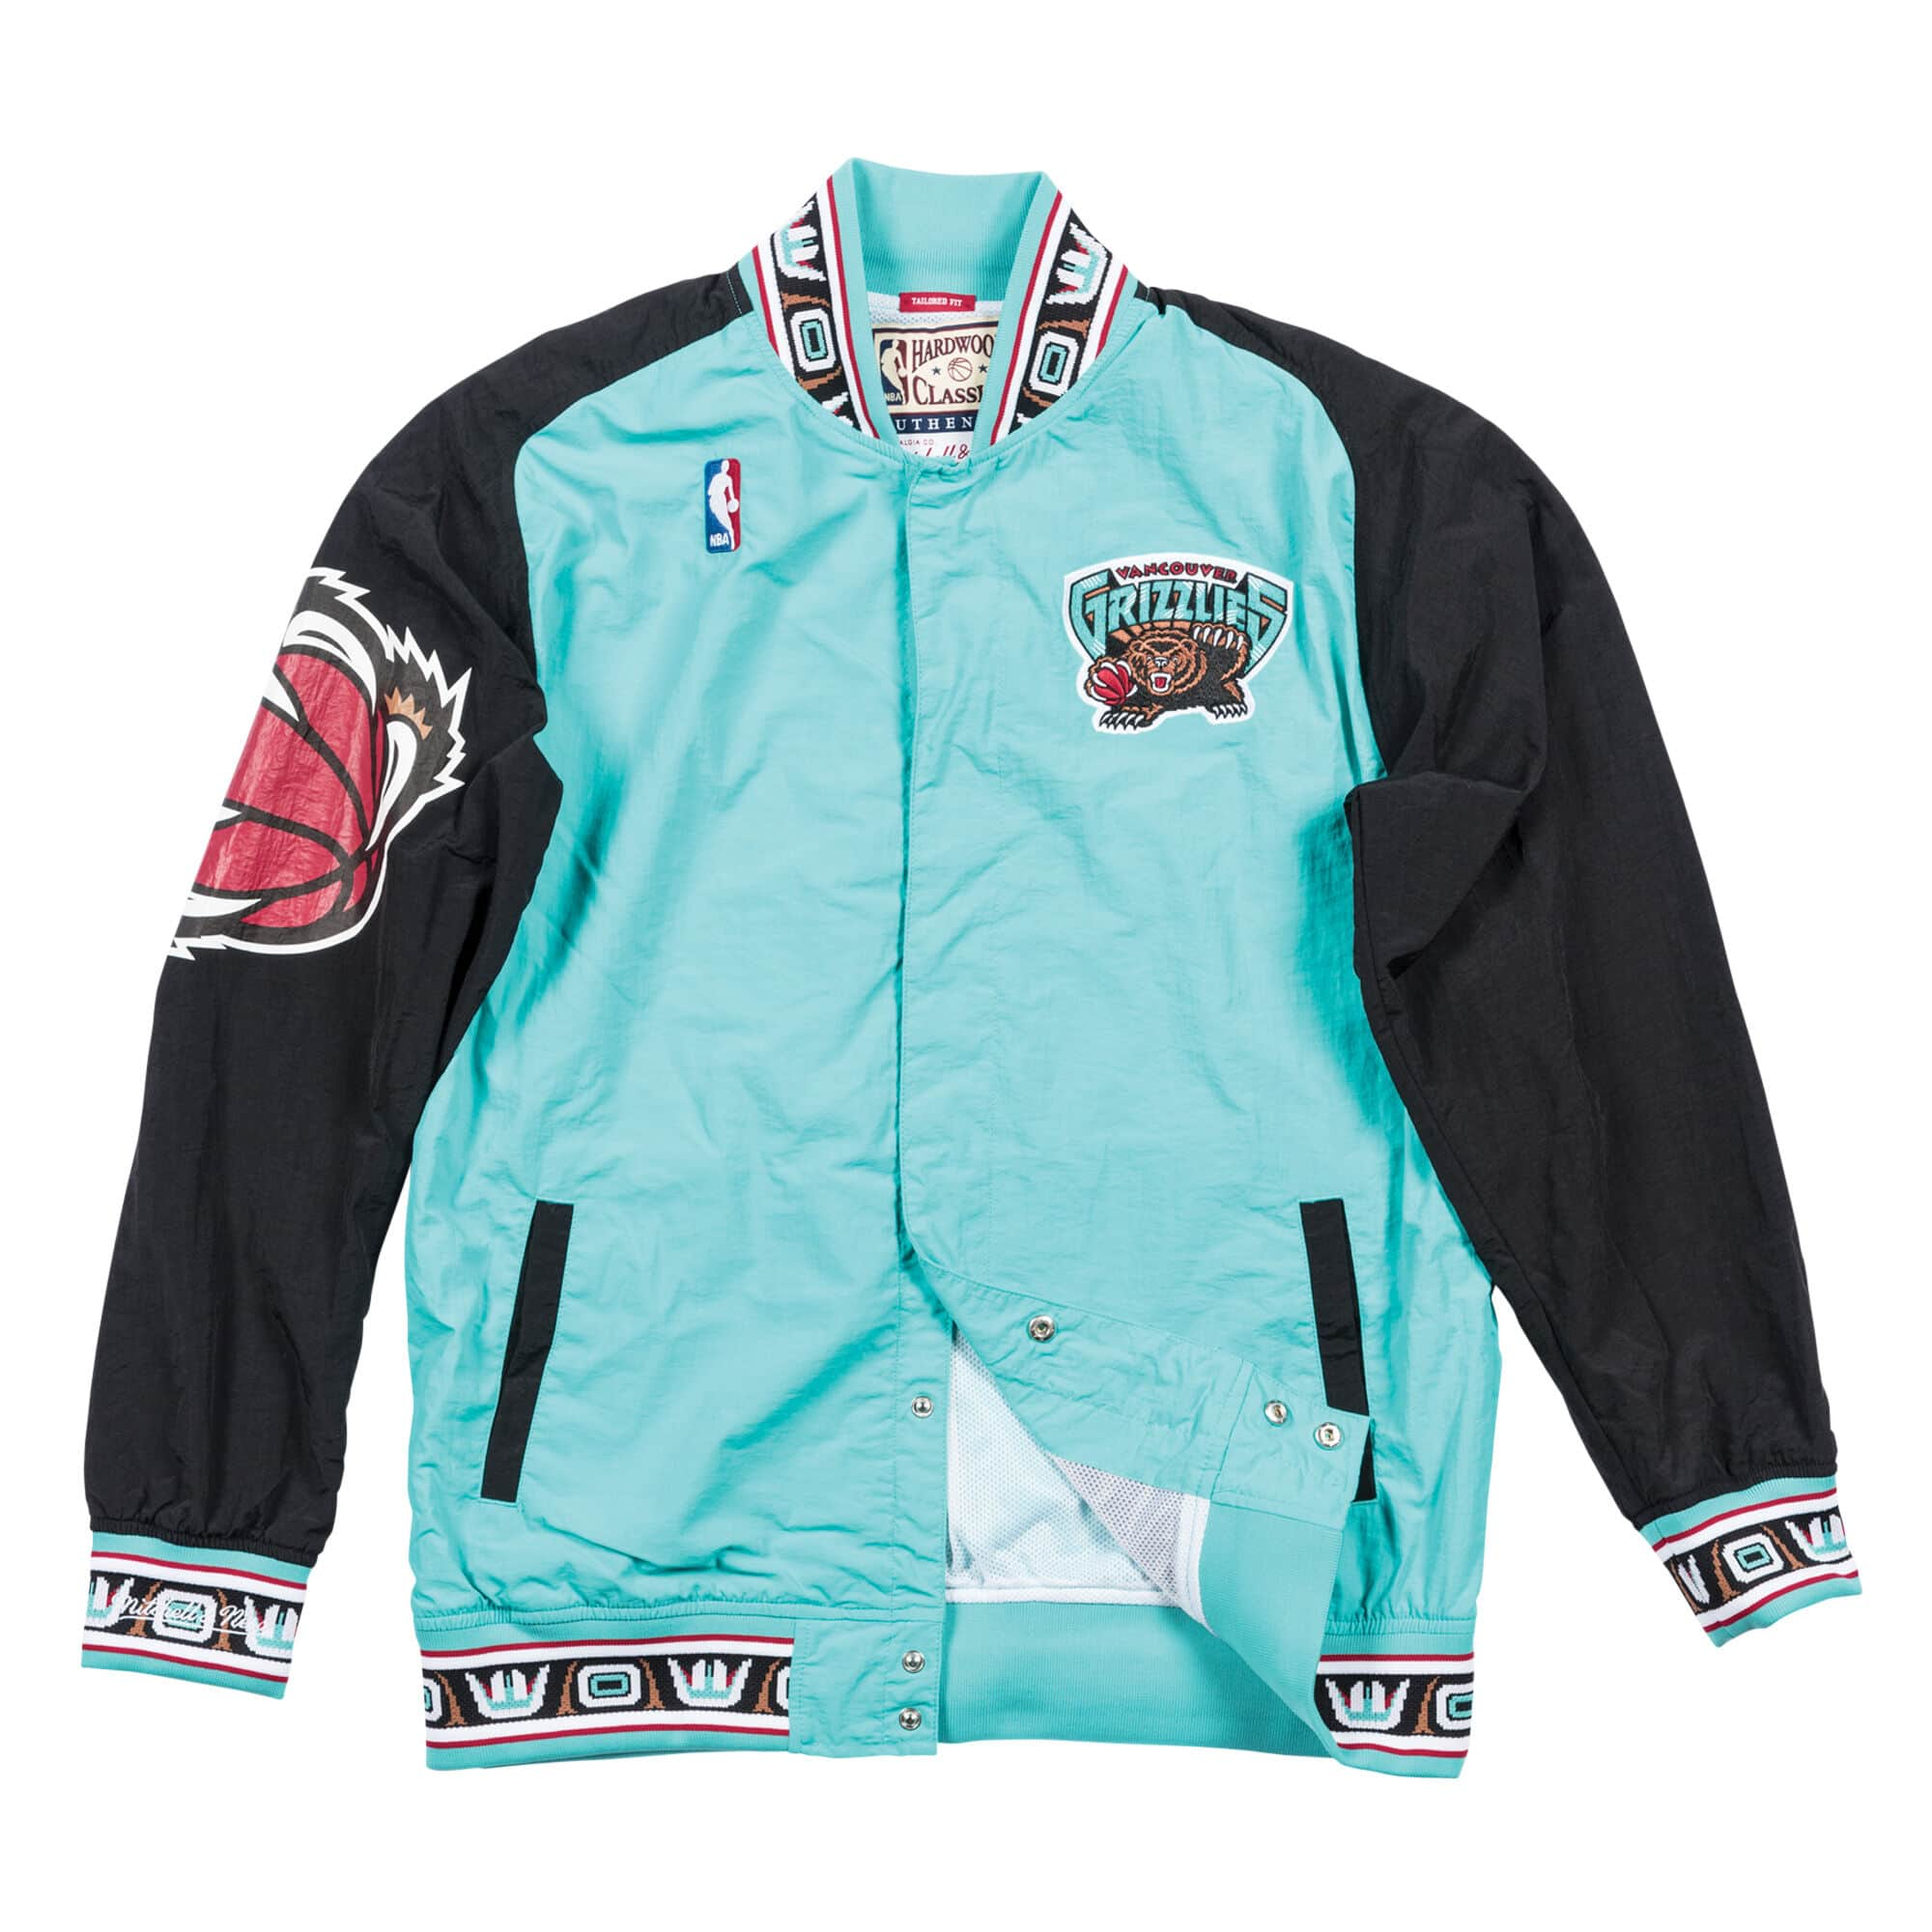 Authentic Warm Up Jacket Vancouver Grizzlies 1995-96